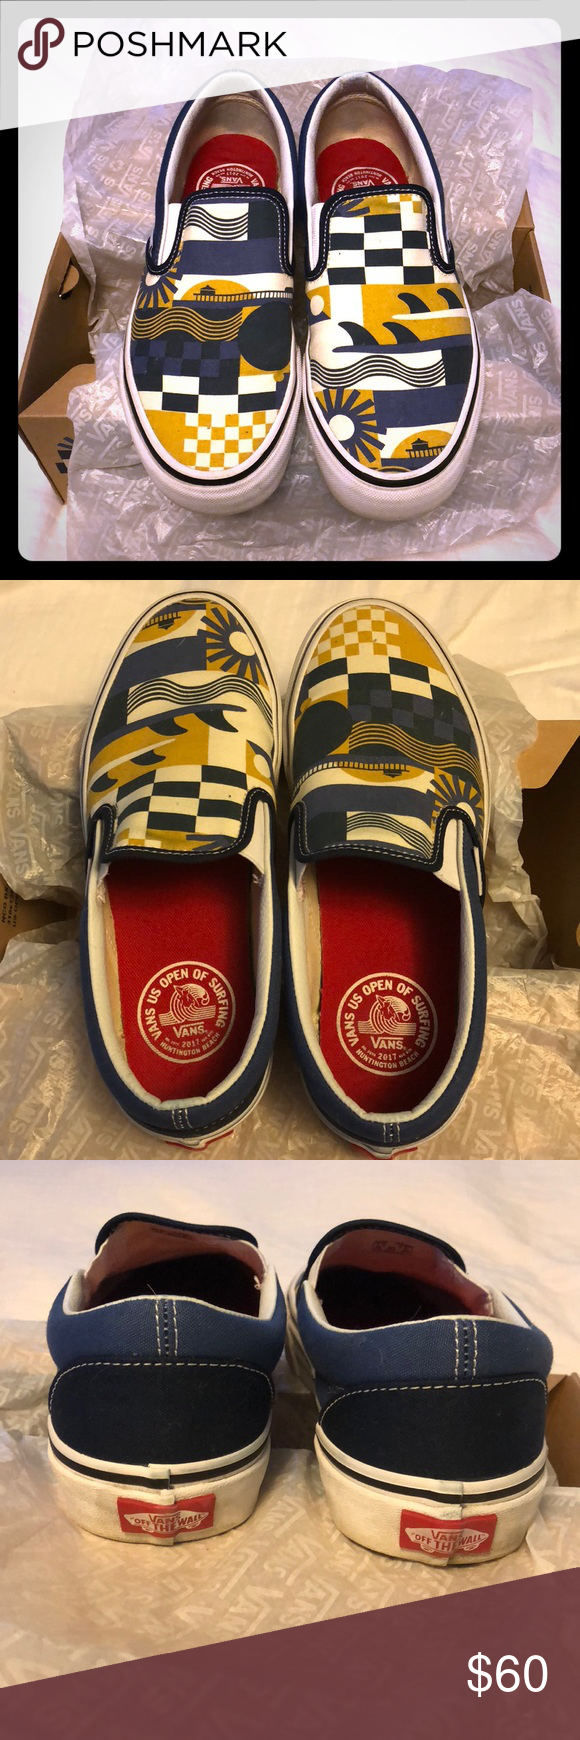 922d3dbaf0d Vans x US Open of Surfing Gently used Vans x US Open of Surfing 2017. Men s  size 7   Women s size 8.5. Shoes always stored in original box and worn  only a ...